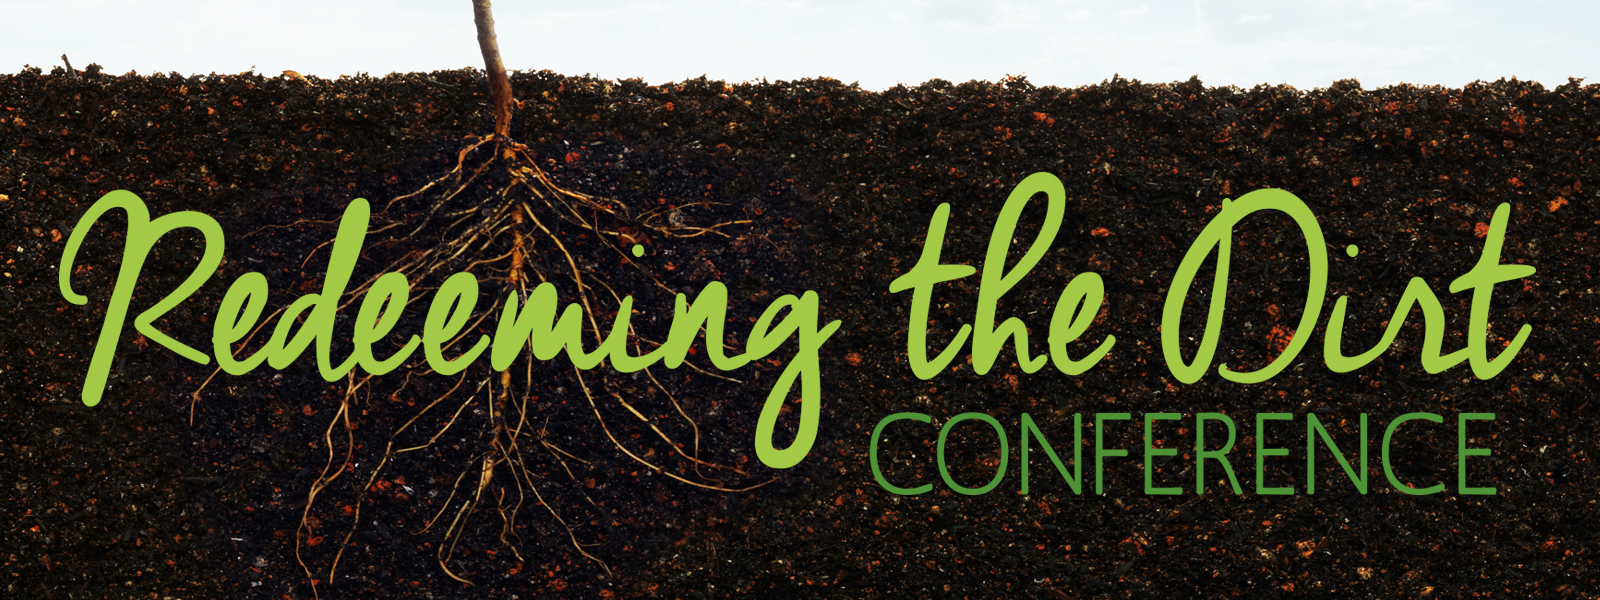 Redeeming the Dirt Conference